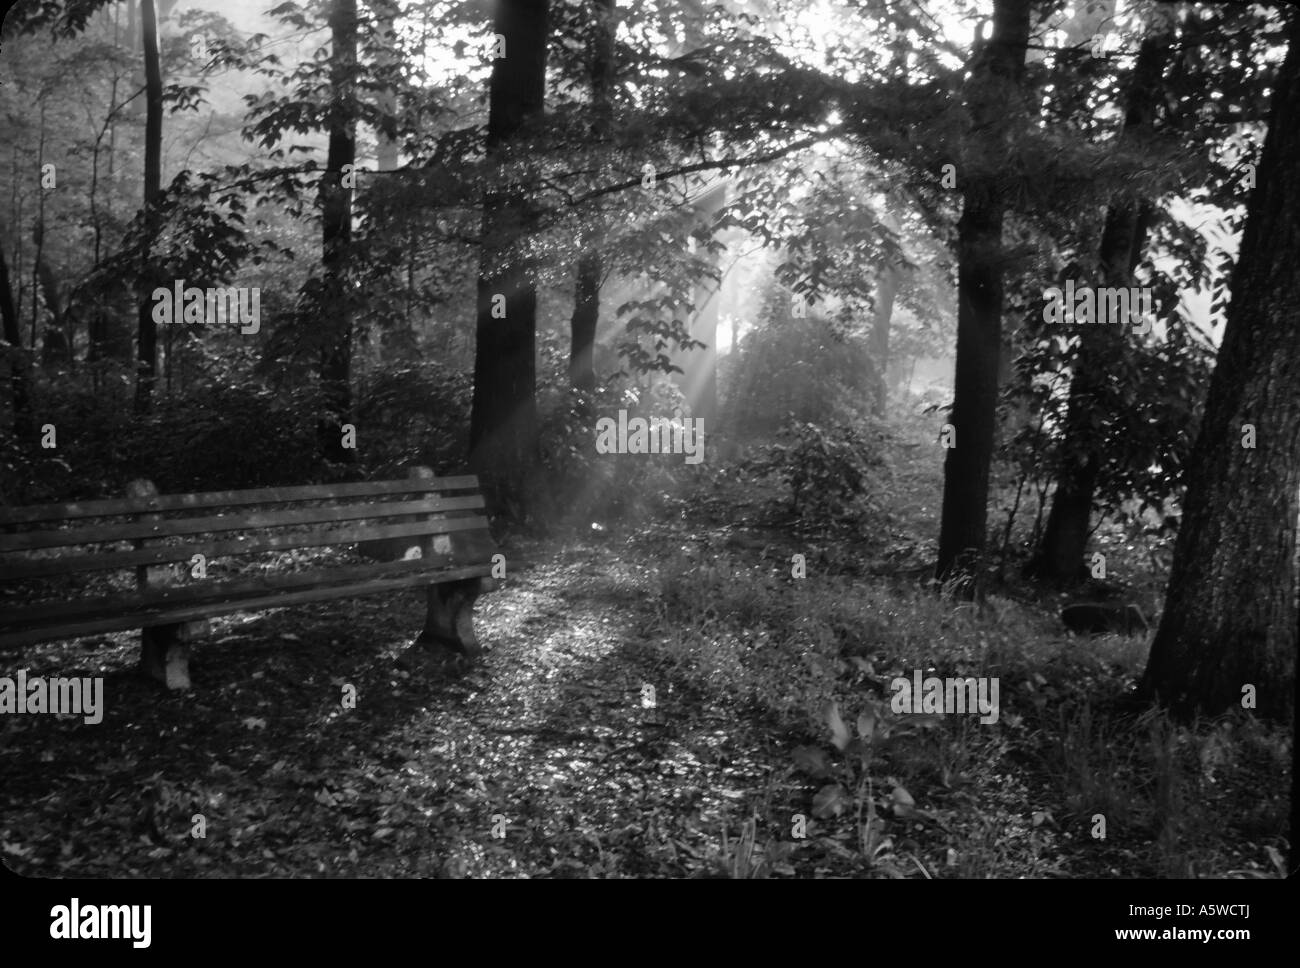 Black and white fine art landscape sunlight streaming through trees onto old bench at dawn - Stock Image